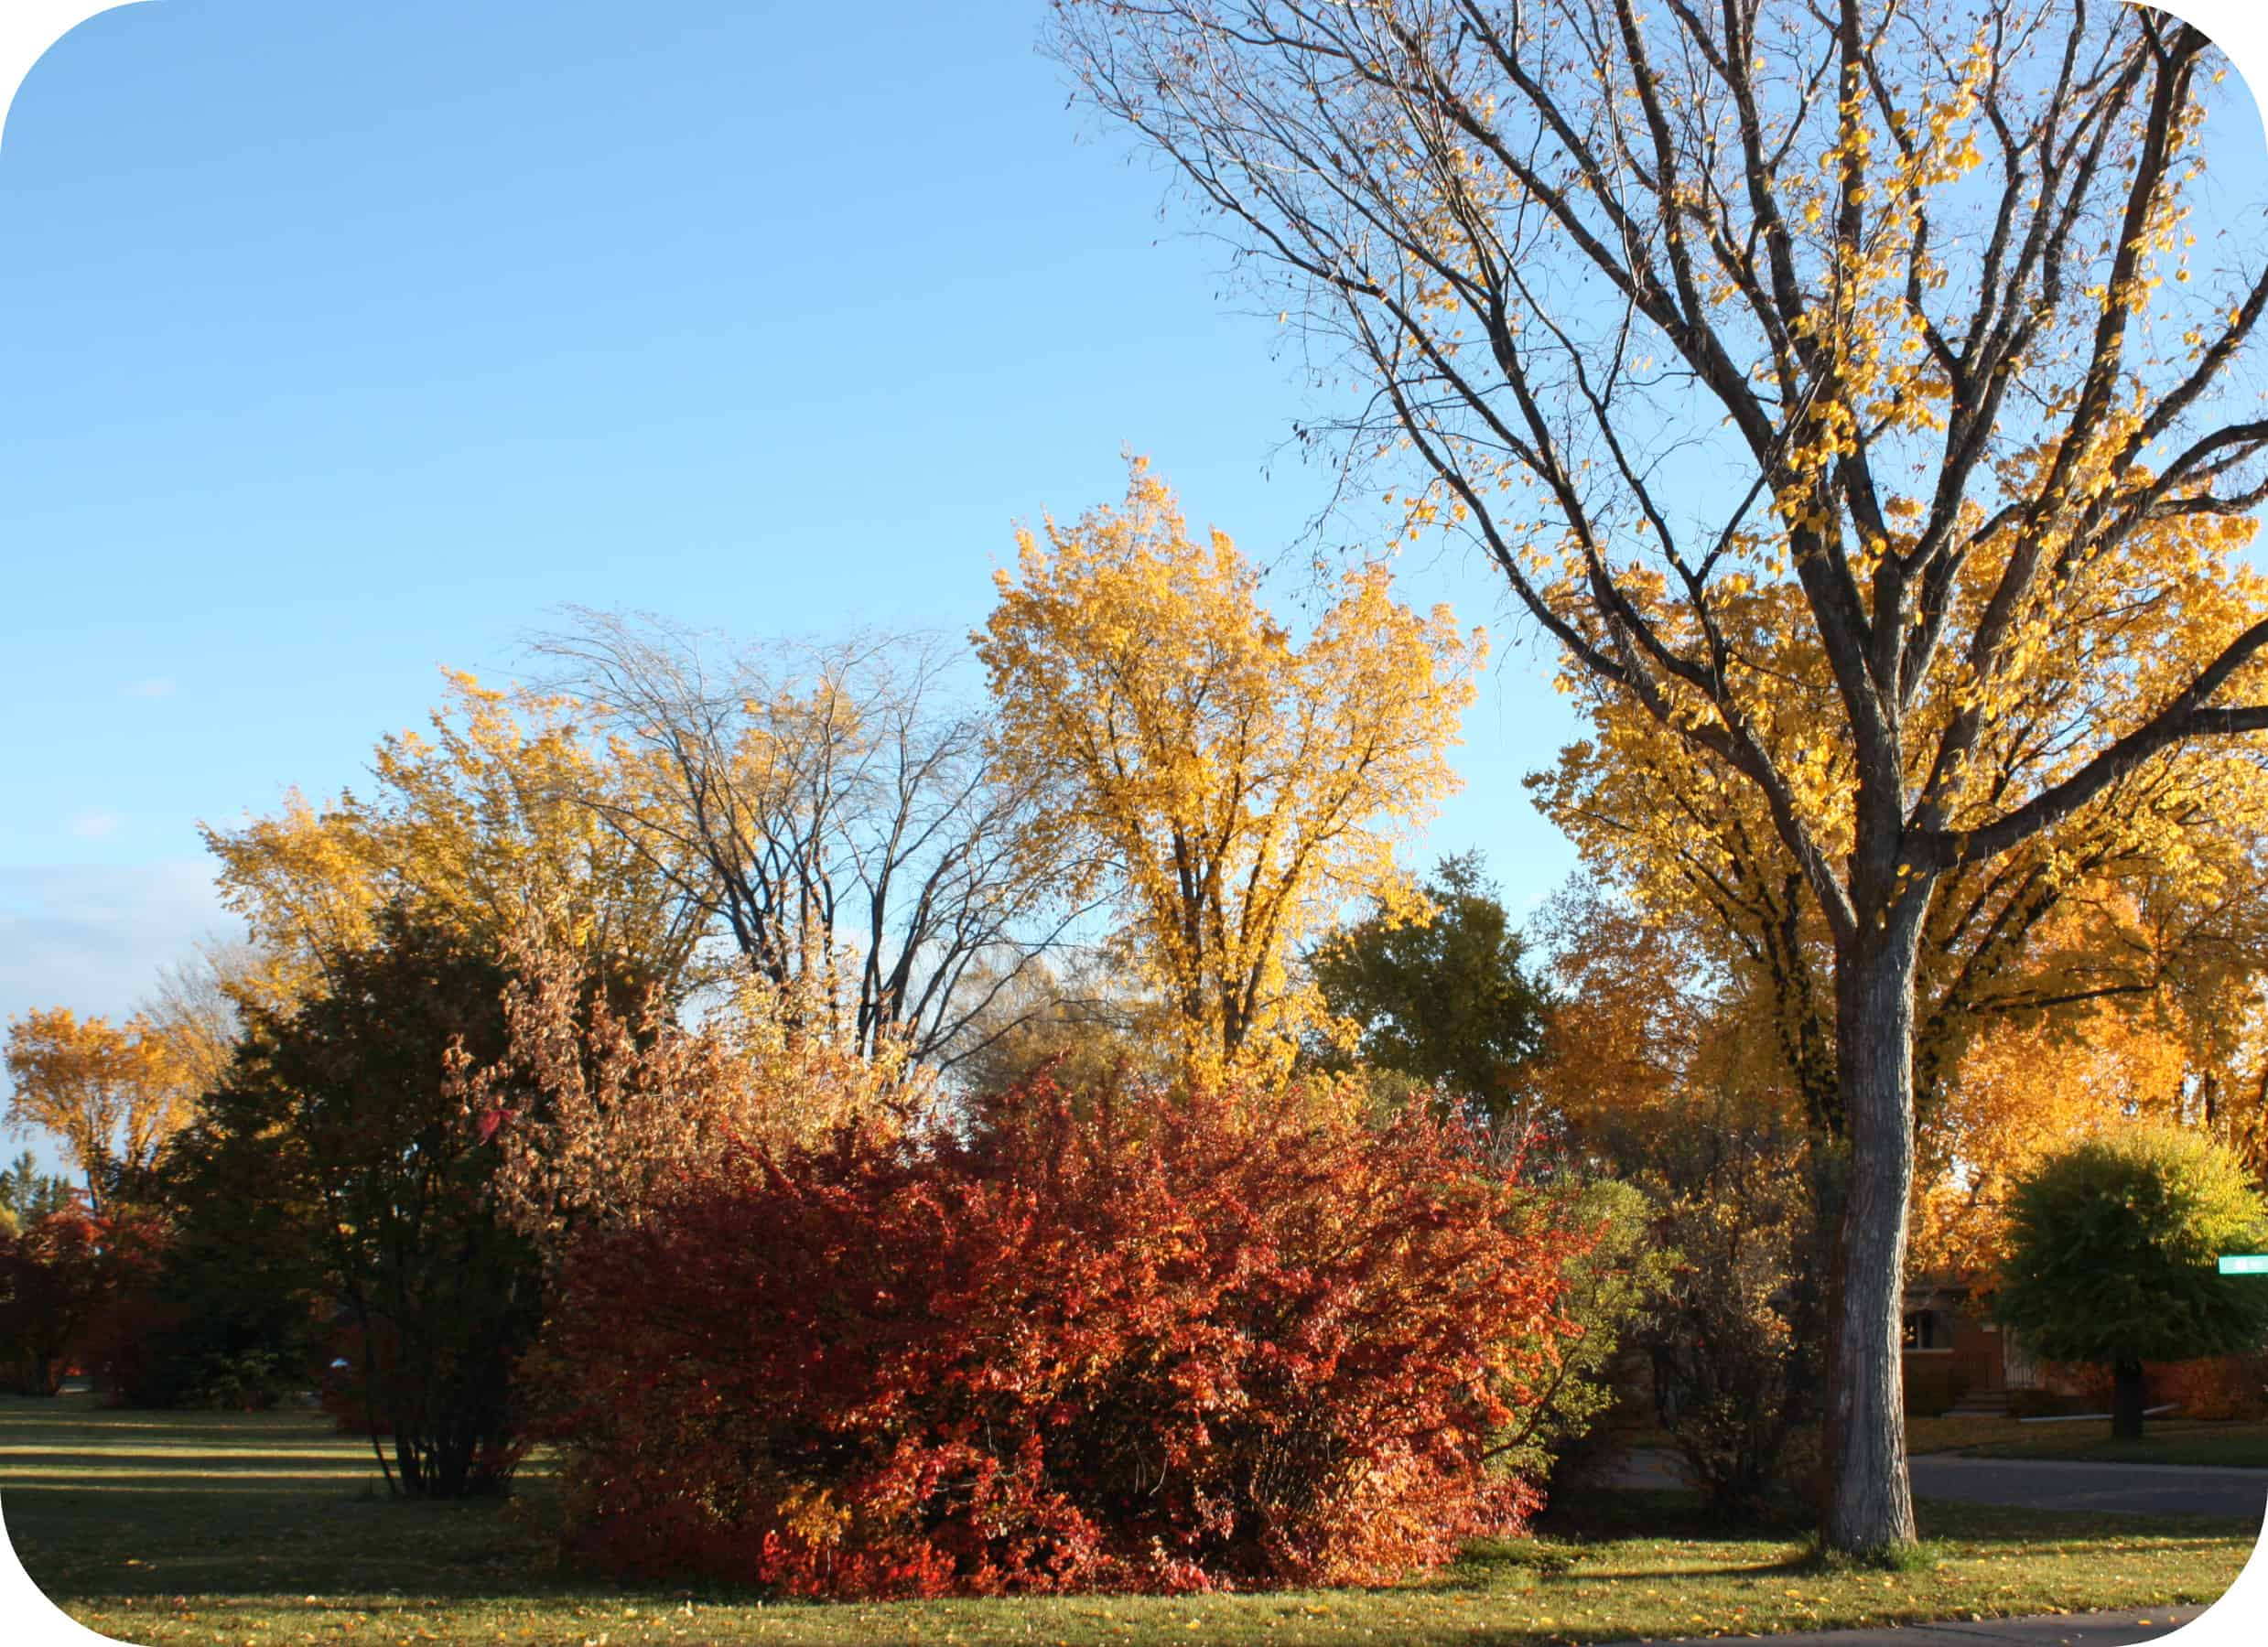 Wordless Wednesday | Surrounded in Fall Colors